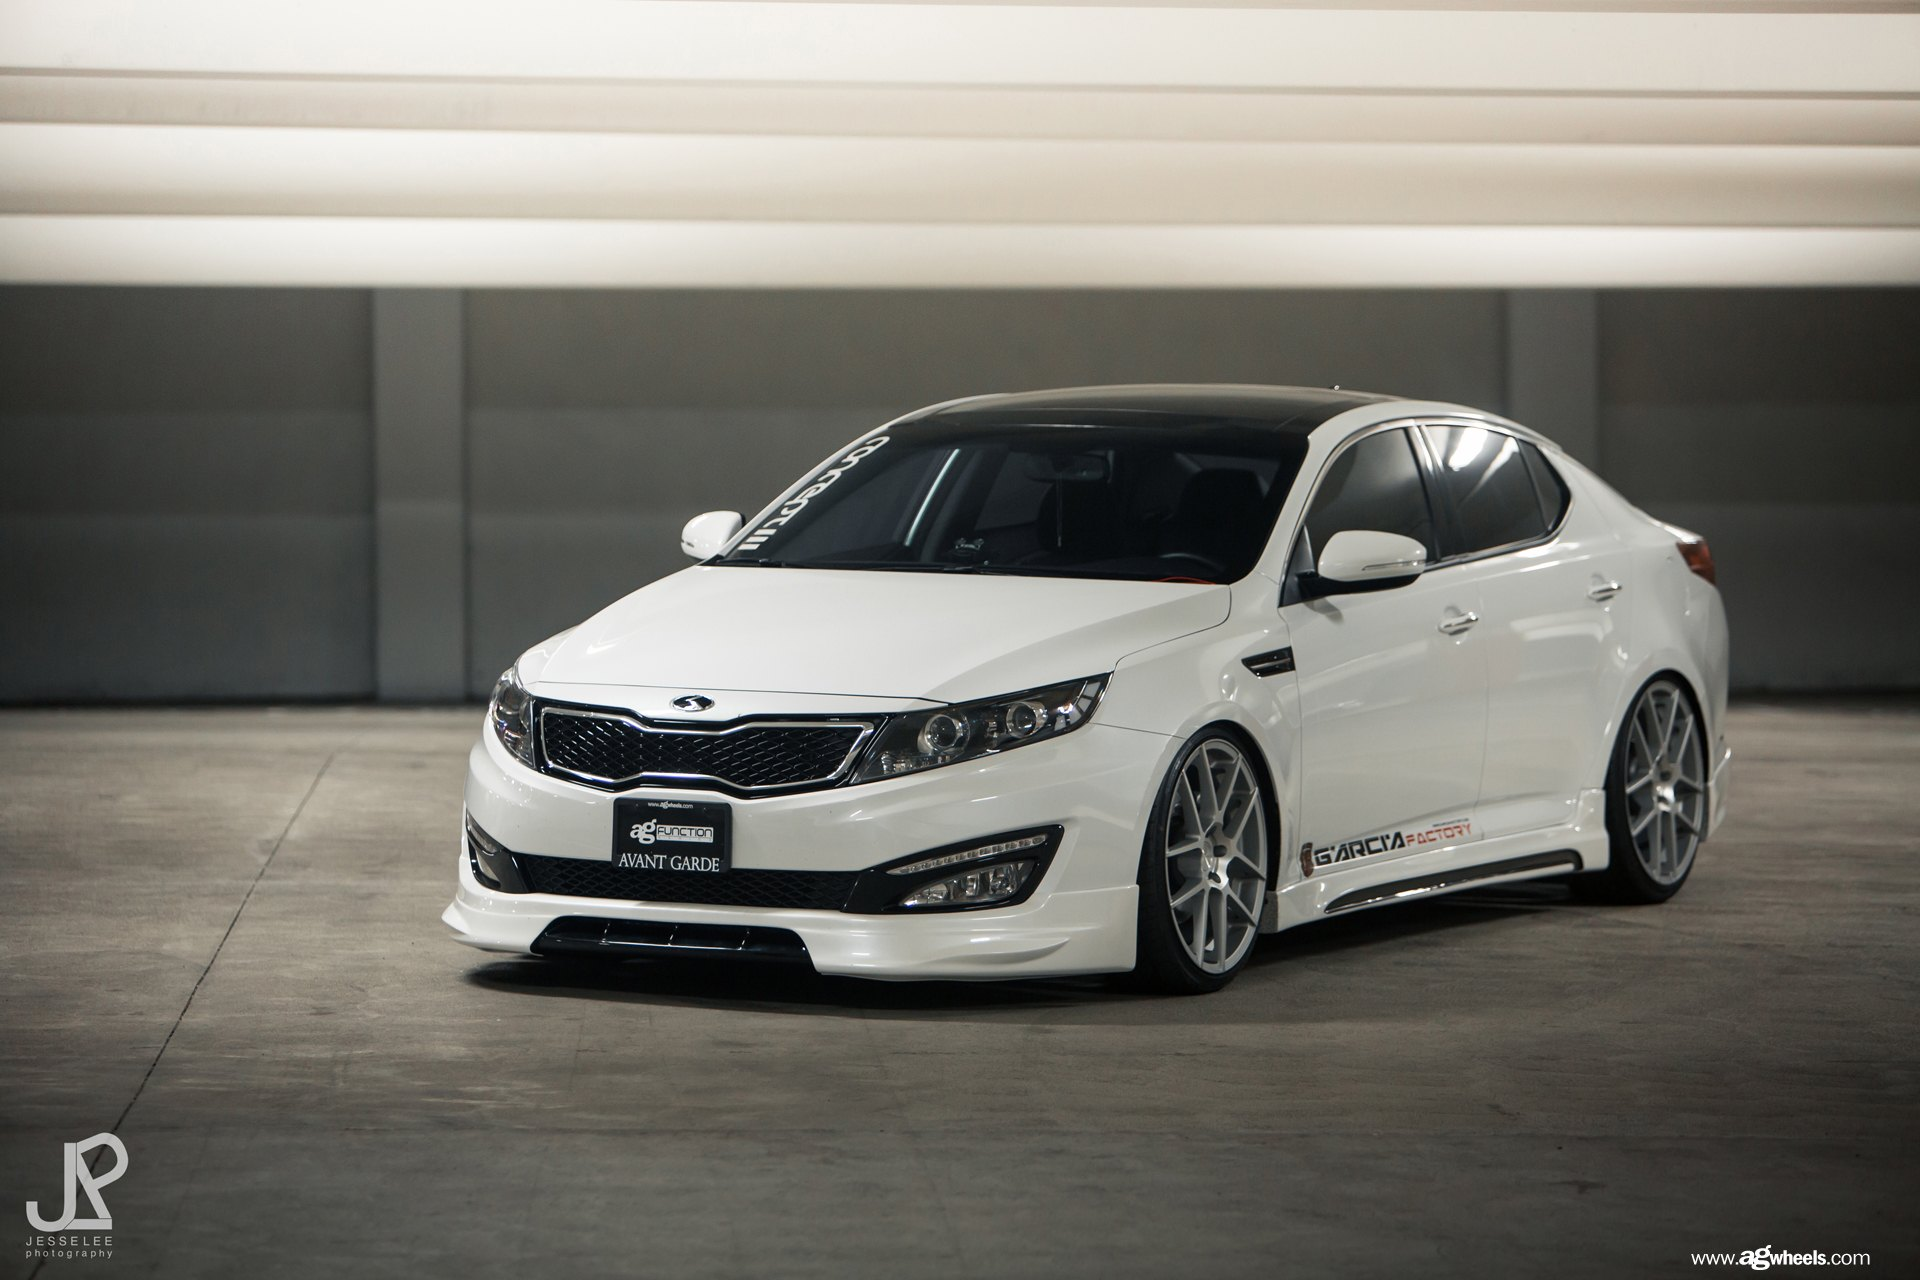 Optima With Sport Body Kit And Avant Garde Custom Wheels Carid Com Gallery